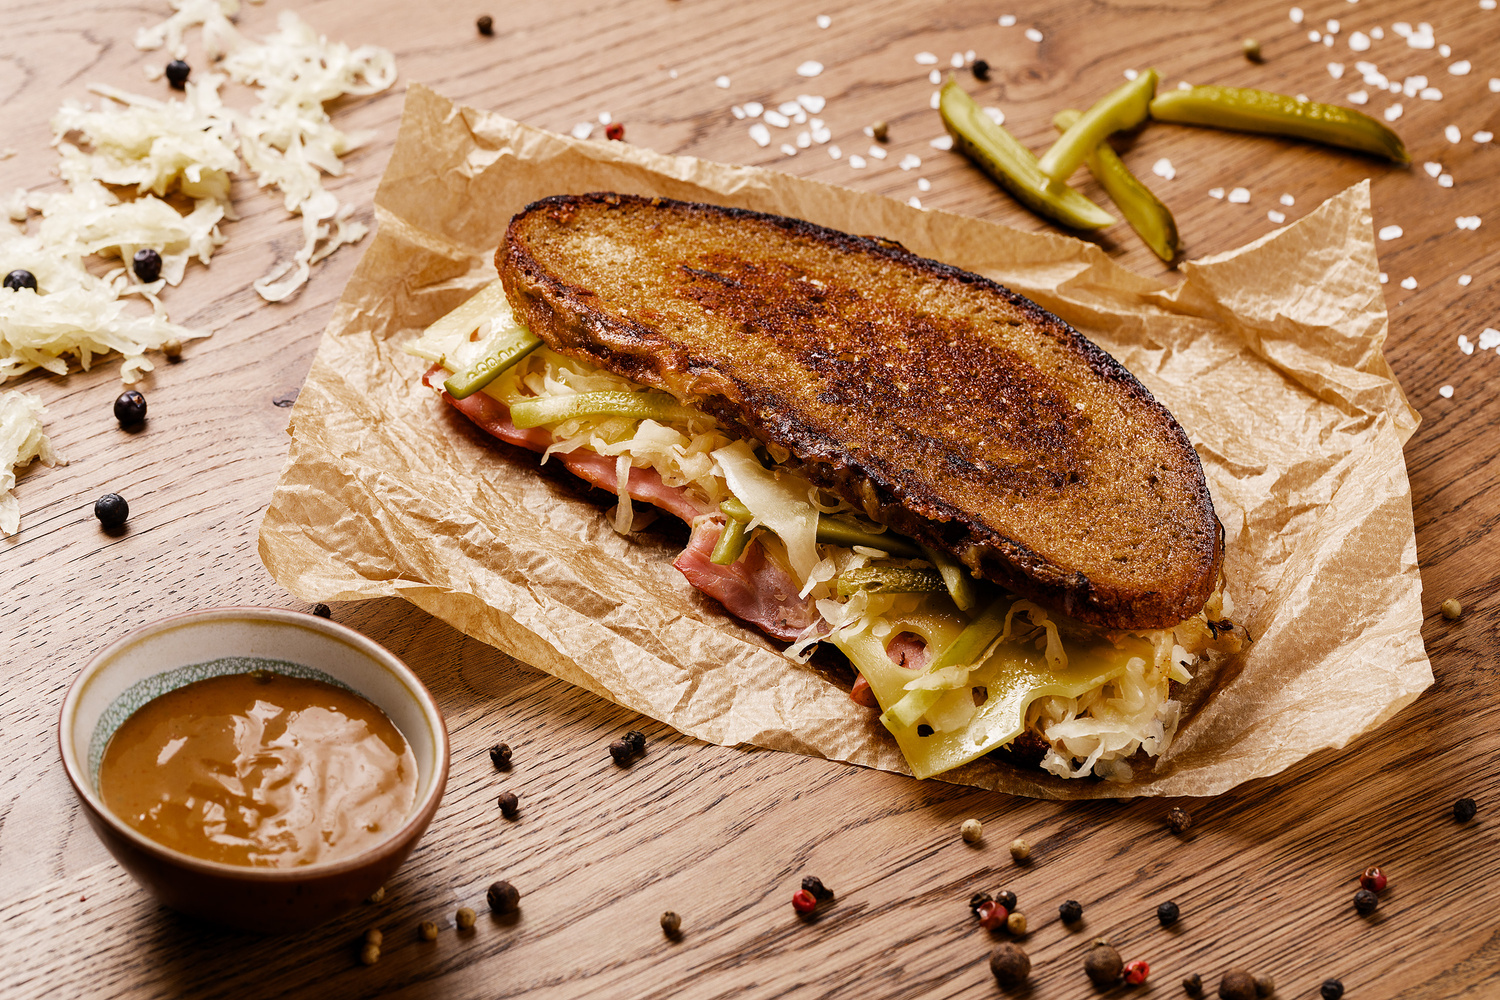 Grilled-Cheese-Sandwich by Till Luz